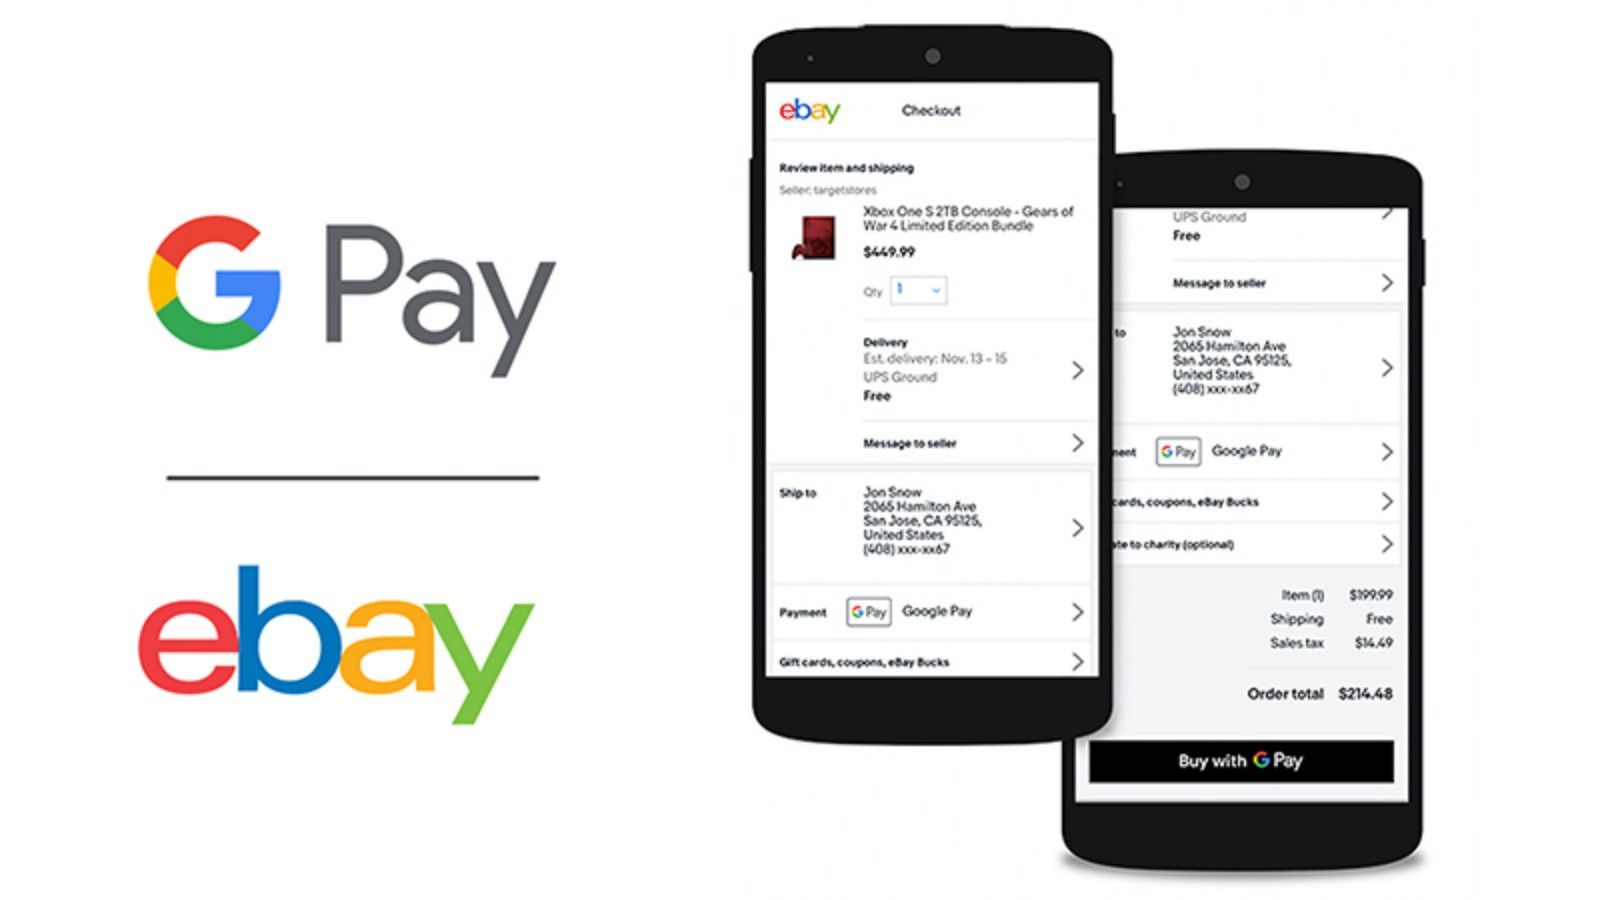 Ebay Expands Managed Payment Options Significantly With Google Pay